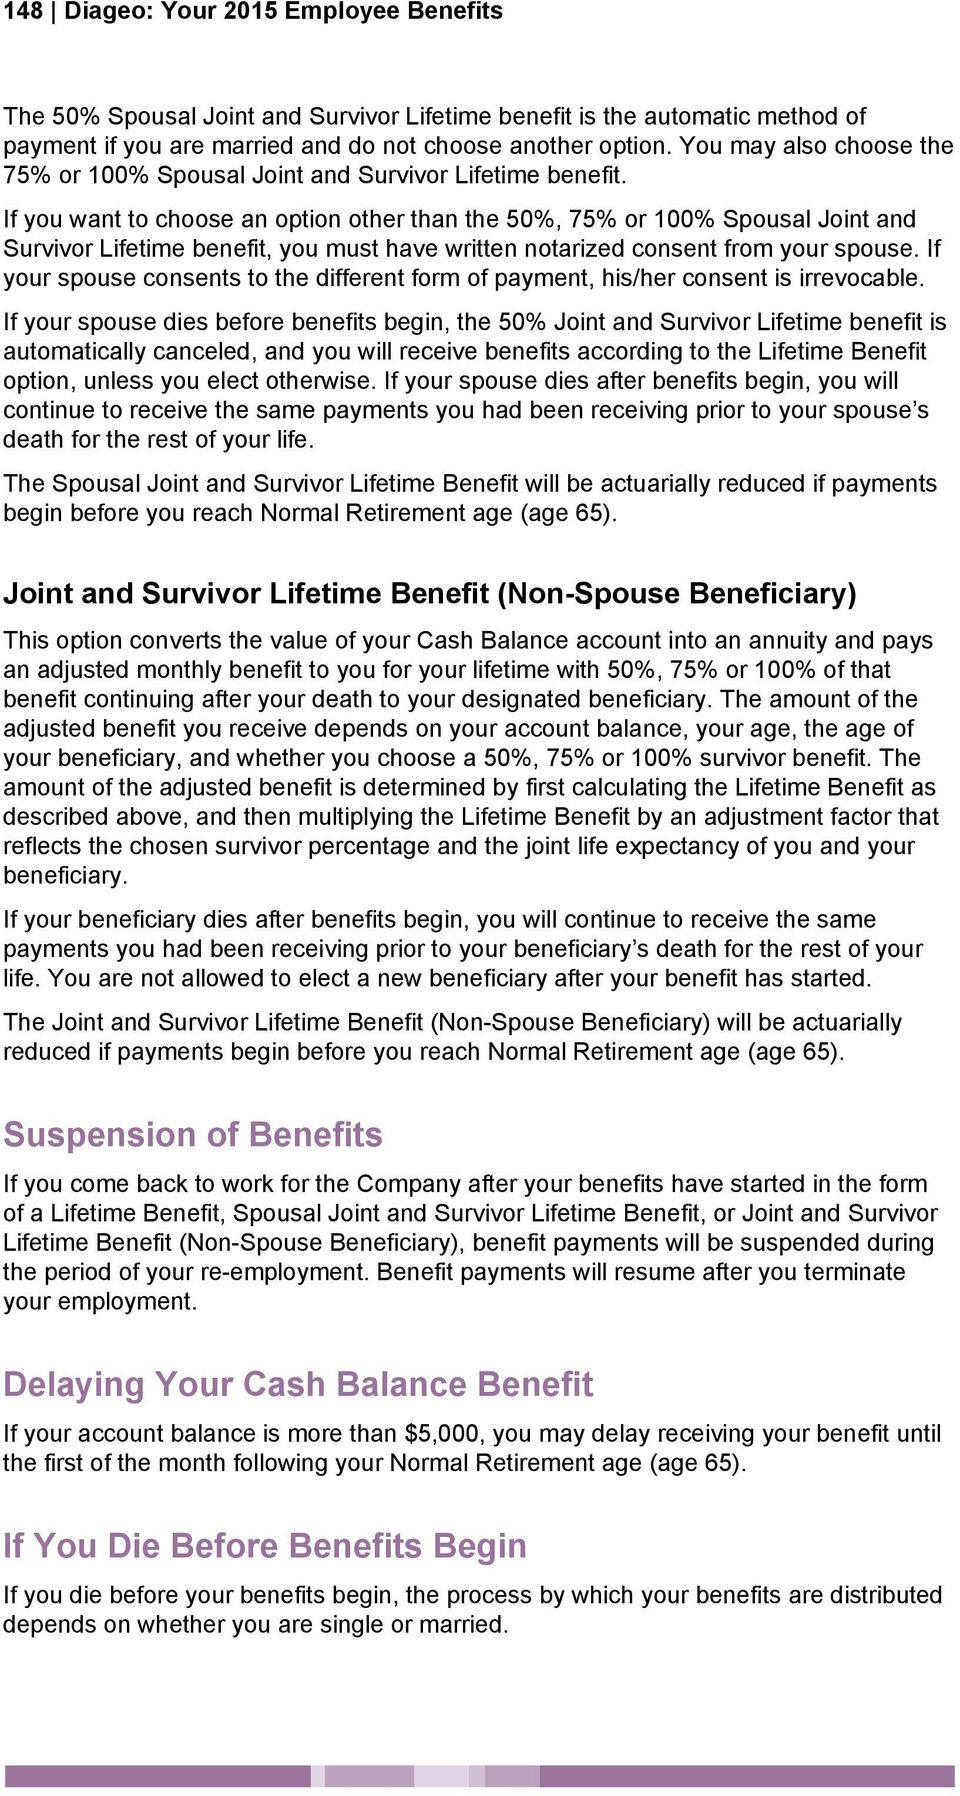 If you want to choose an option other than the 50%, 75% or 100% Spousal Joint and Survivor Lifetime benefit, you must have written notarized consent from your spouse.